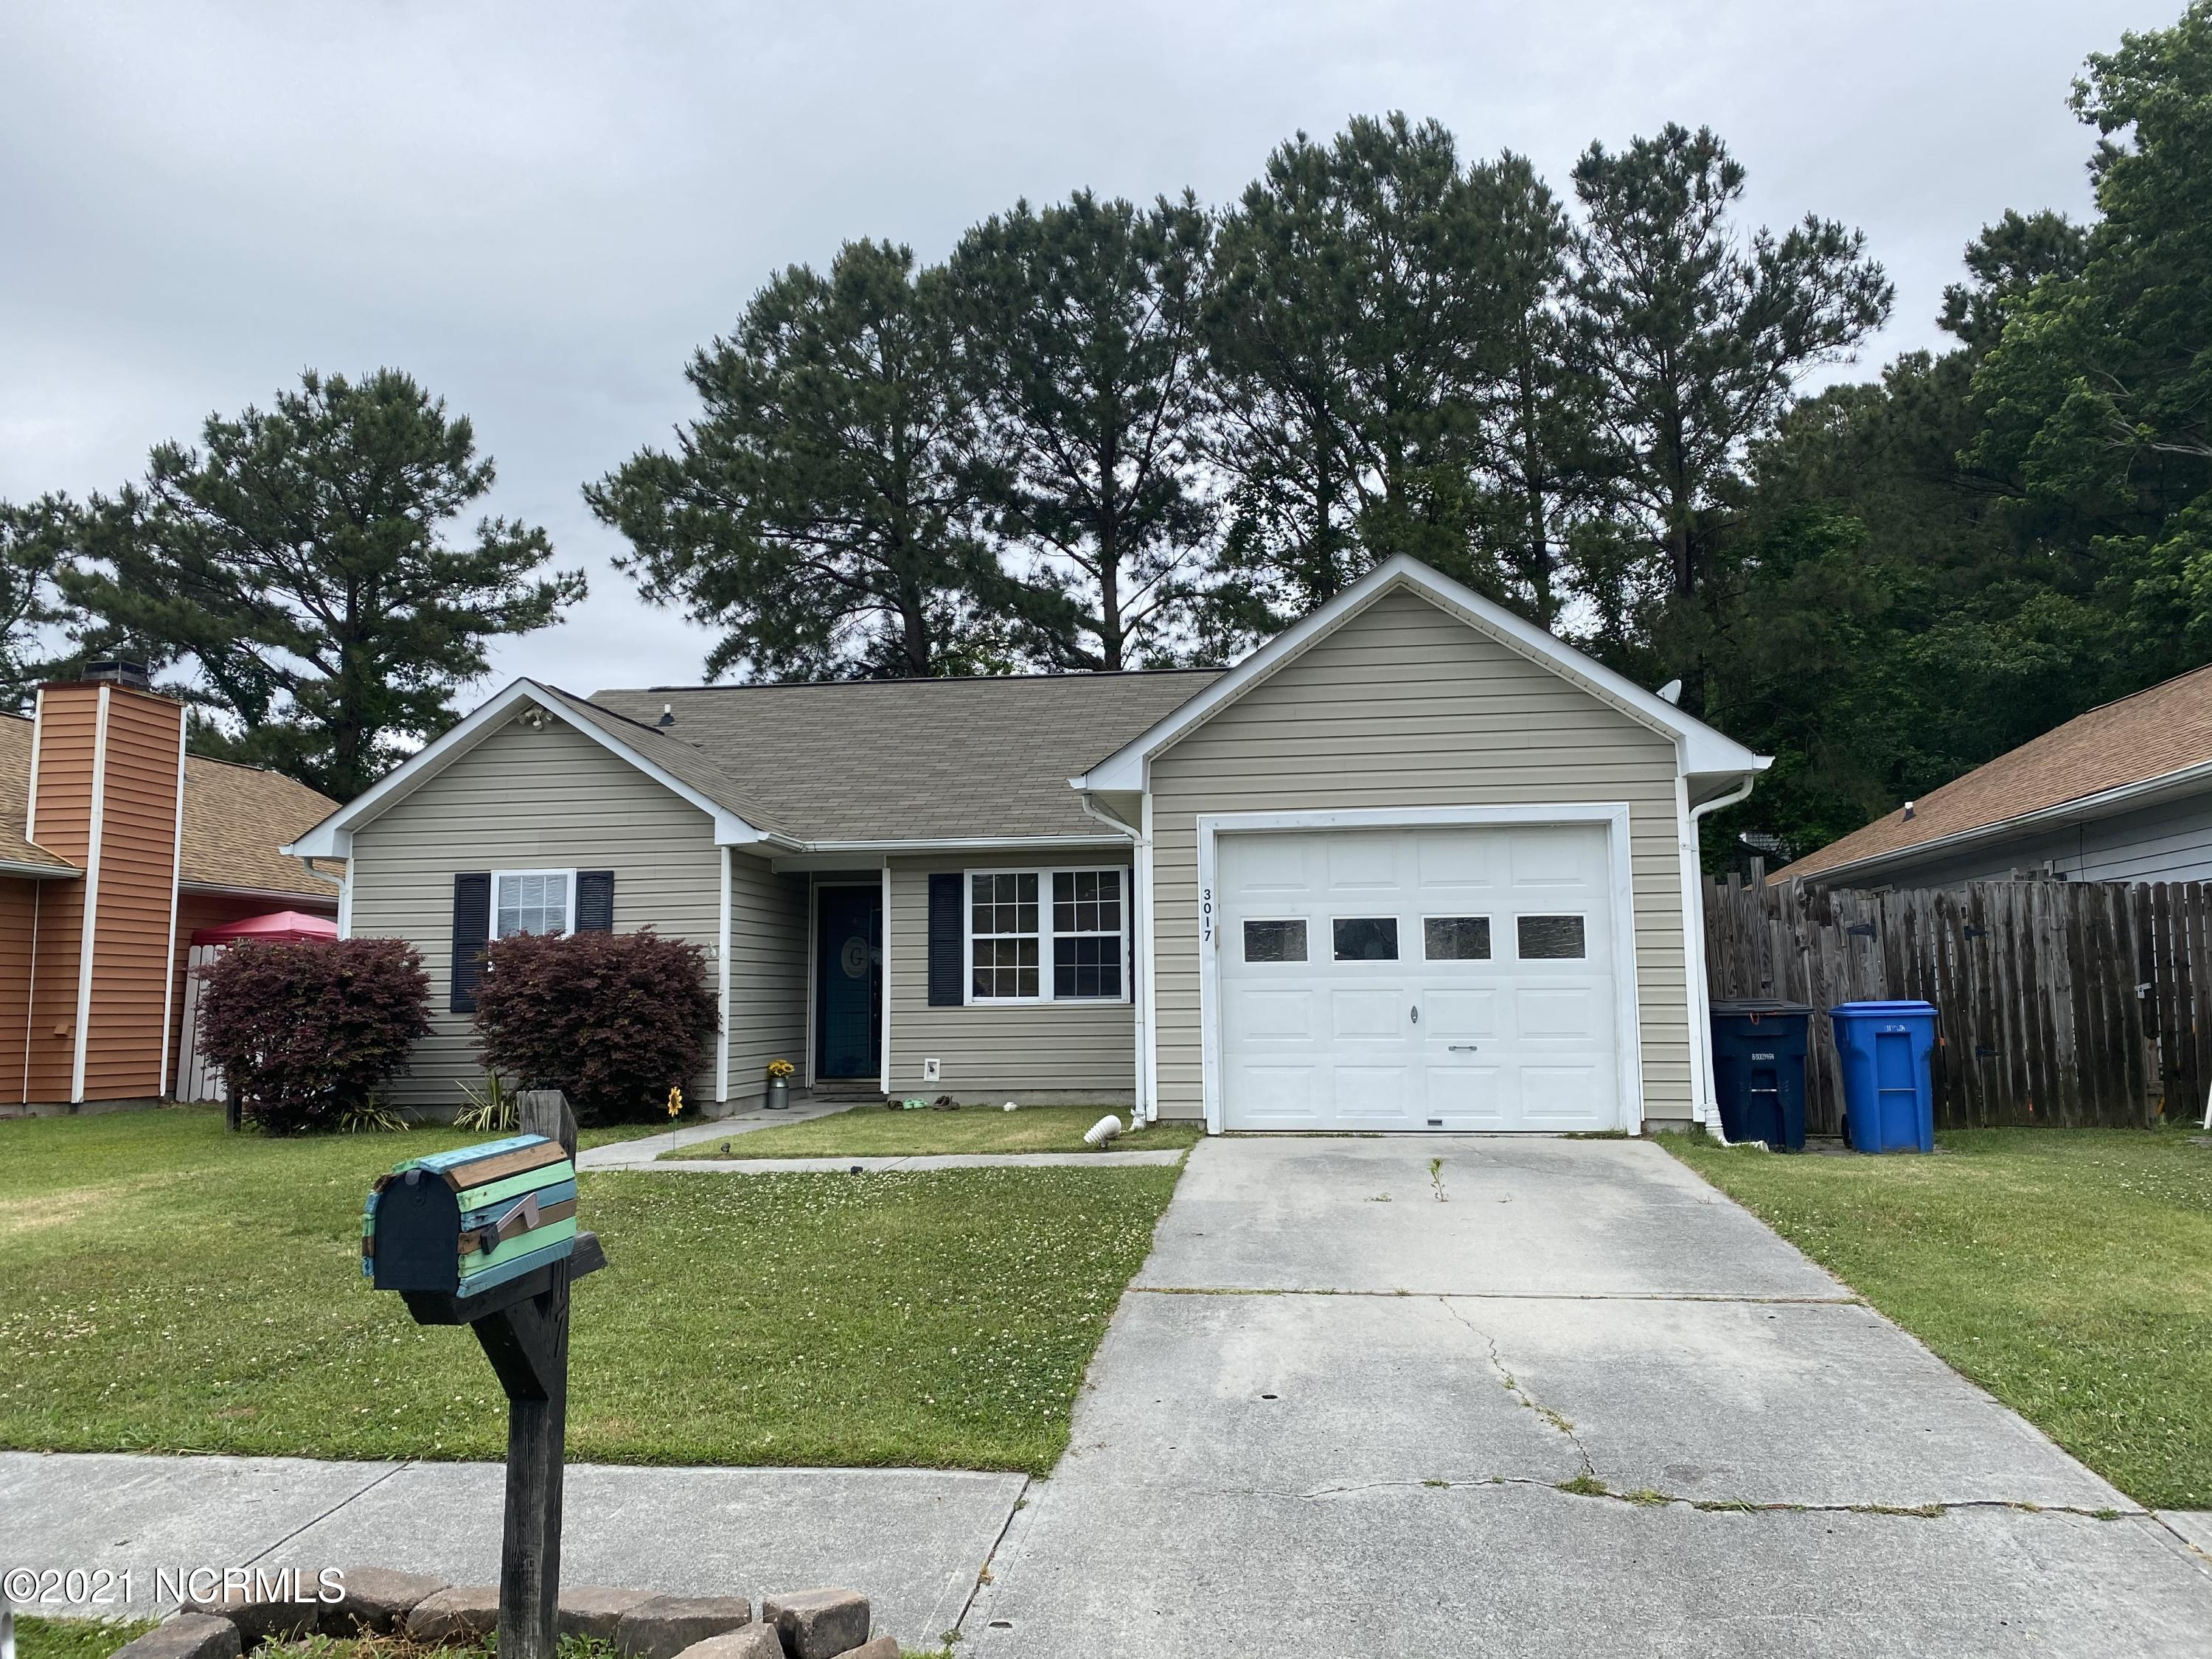 Adorable 3 bed 2 bath home located in jacksonville! With a single car garage and fenced back yard this is a great starter home! This home boasts tile floors and fresh carpet in the bedrooms!